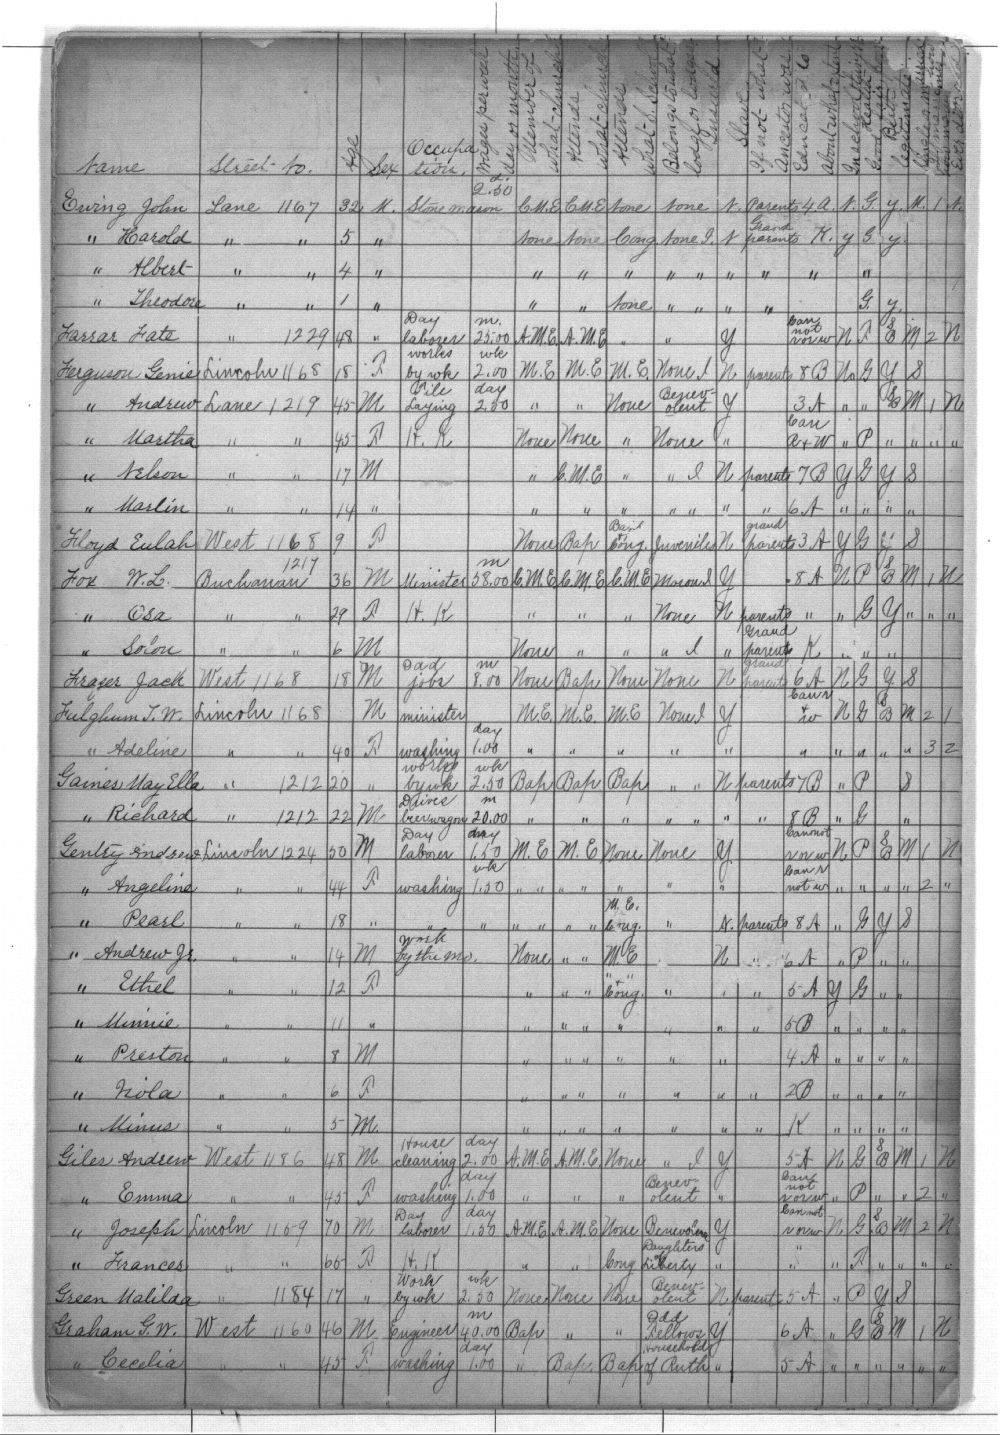 Tennessee Town census - 4